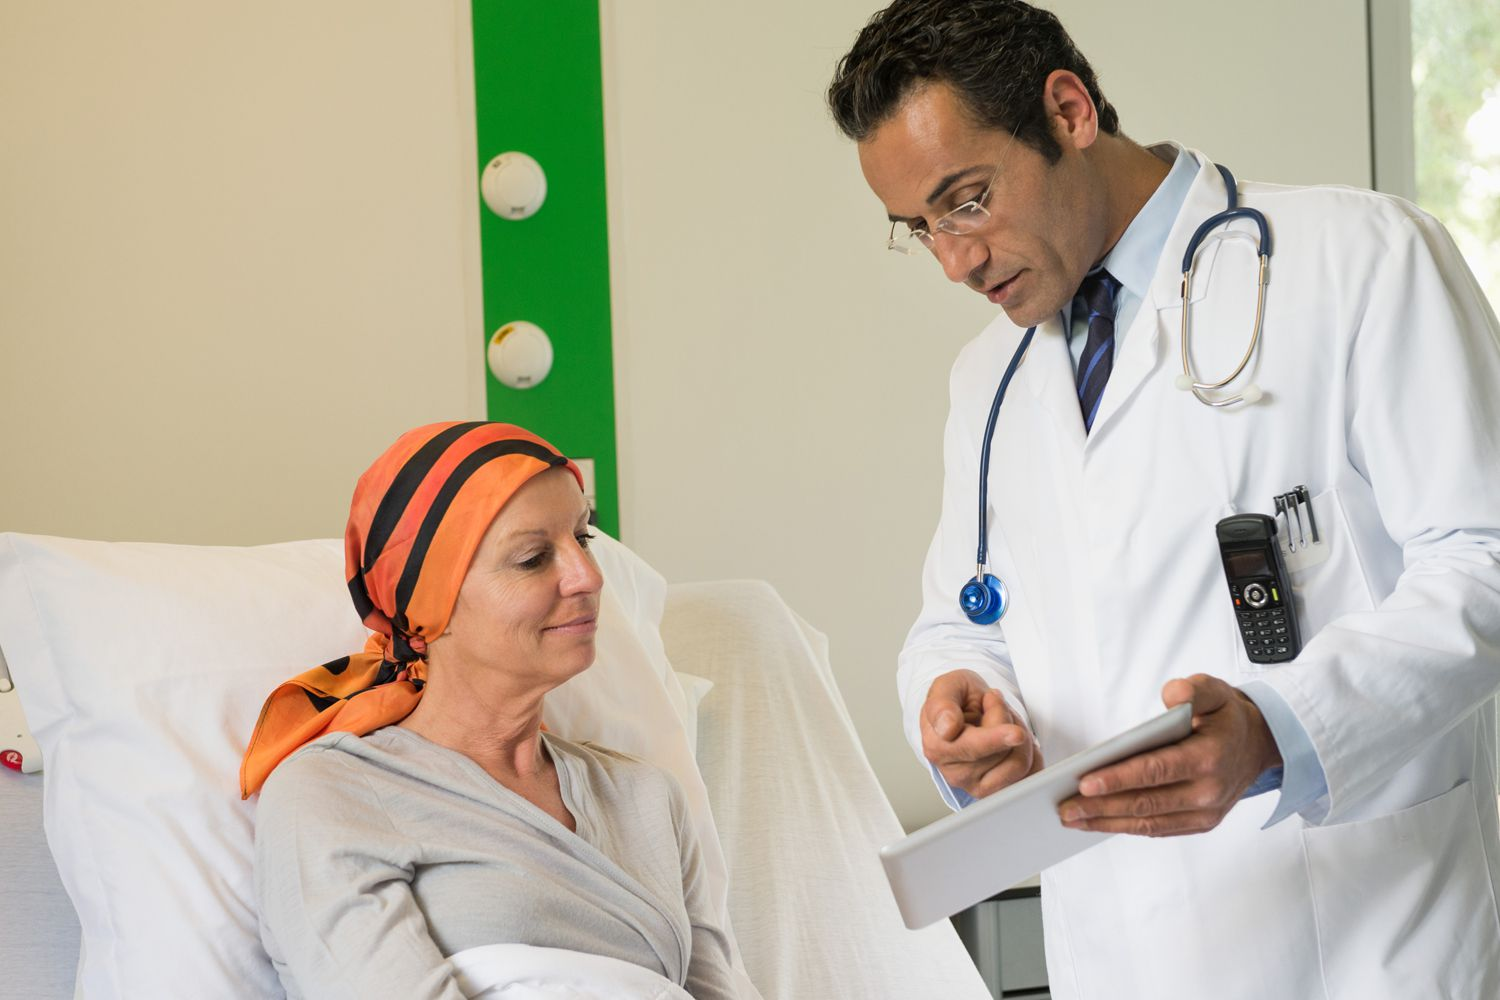 A doctor discusses a report with a patient